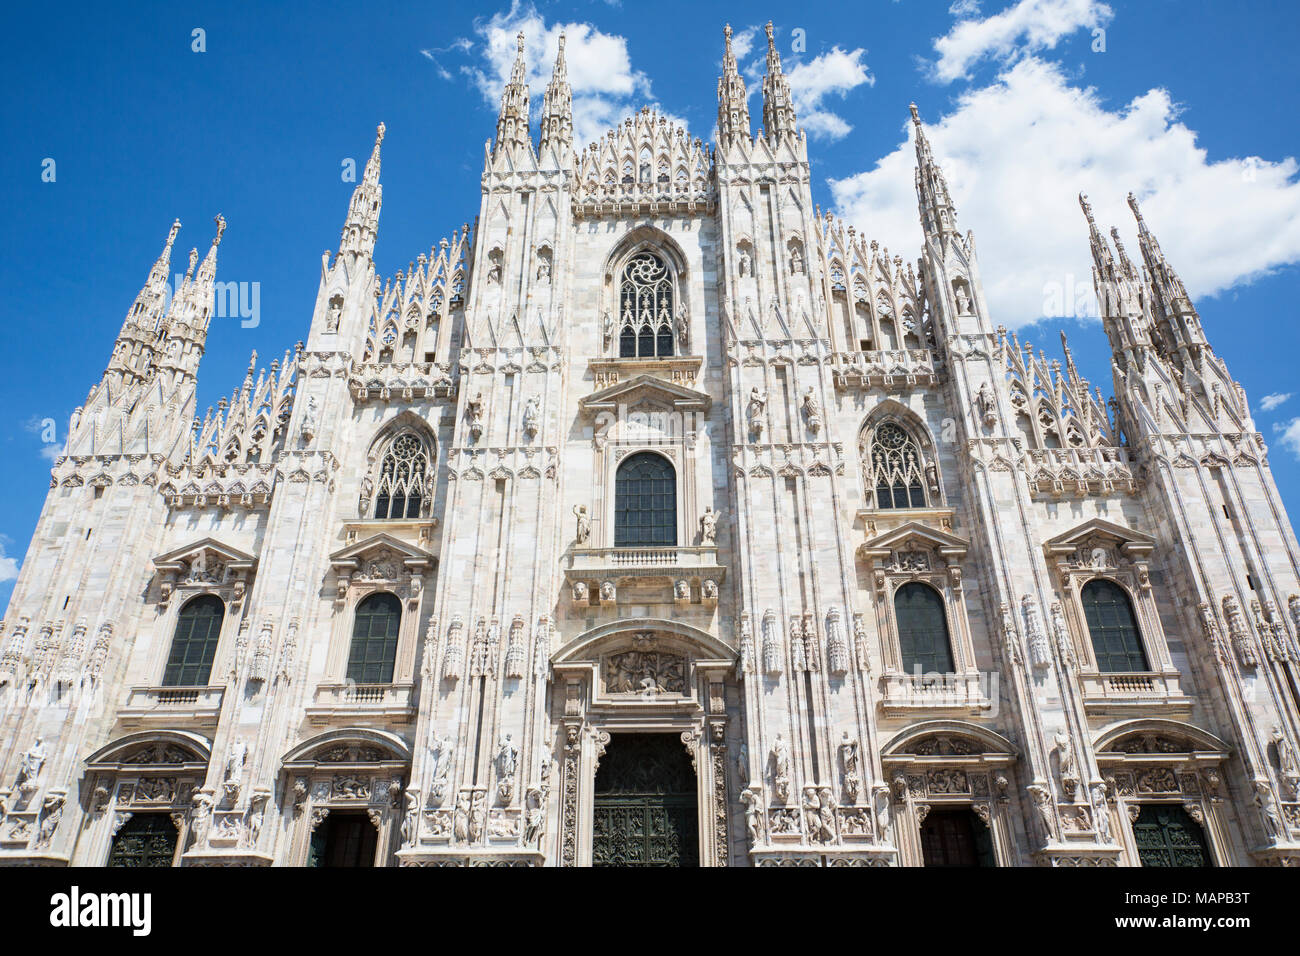 Milan, Milan Province, Lombardy, Italy.  Facade of the Duomo, or cathedral, in the Piazza del Duomo. - Stock Image